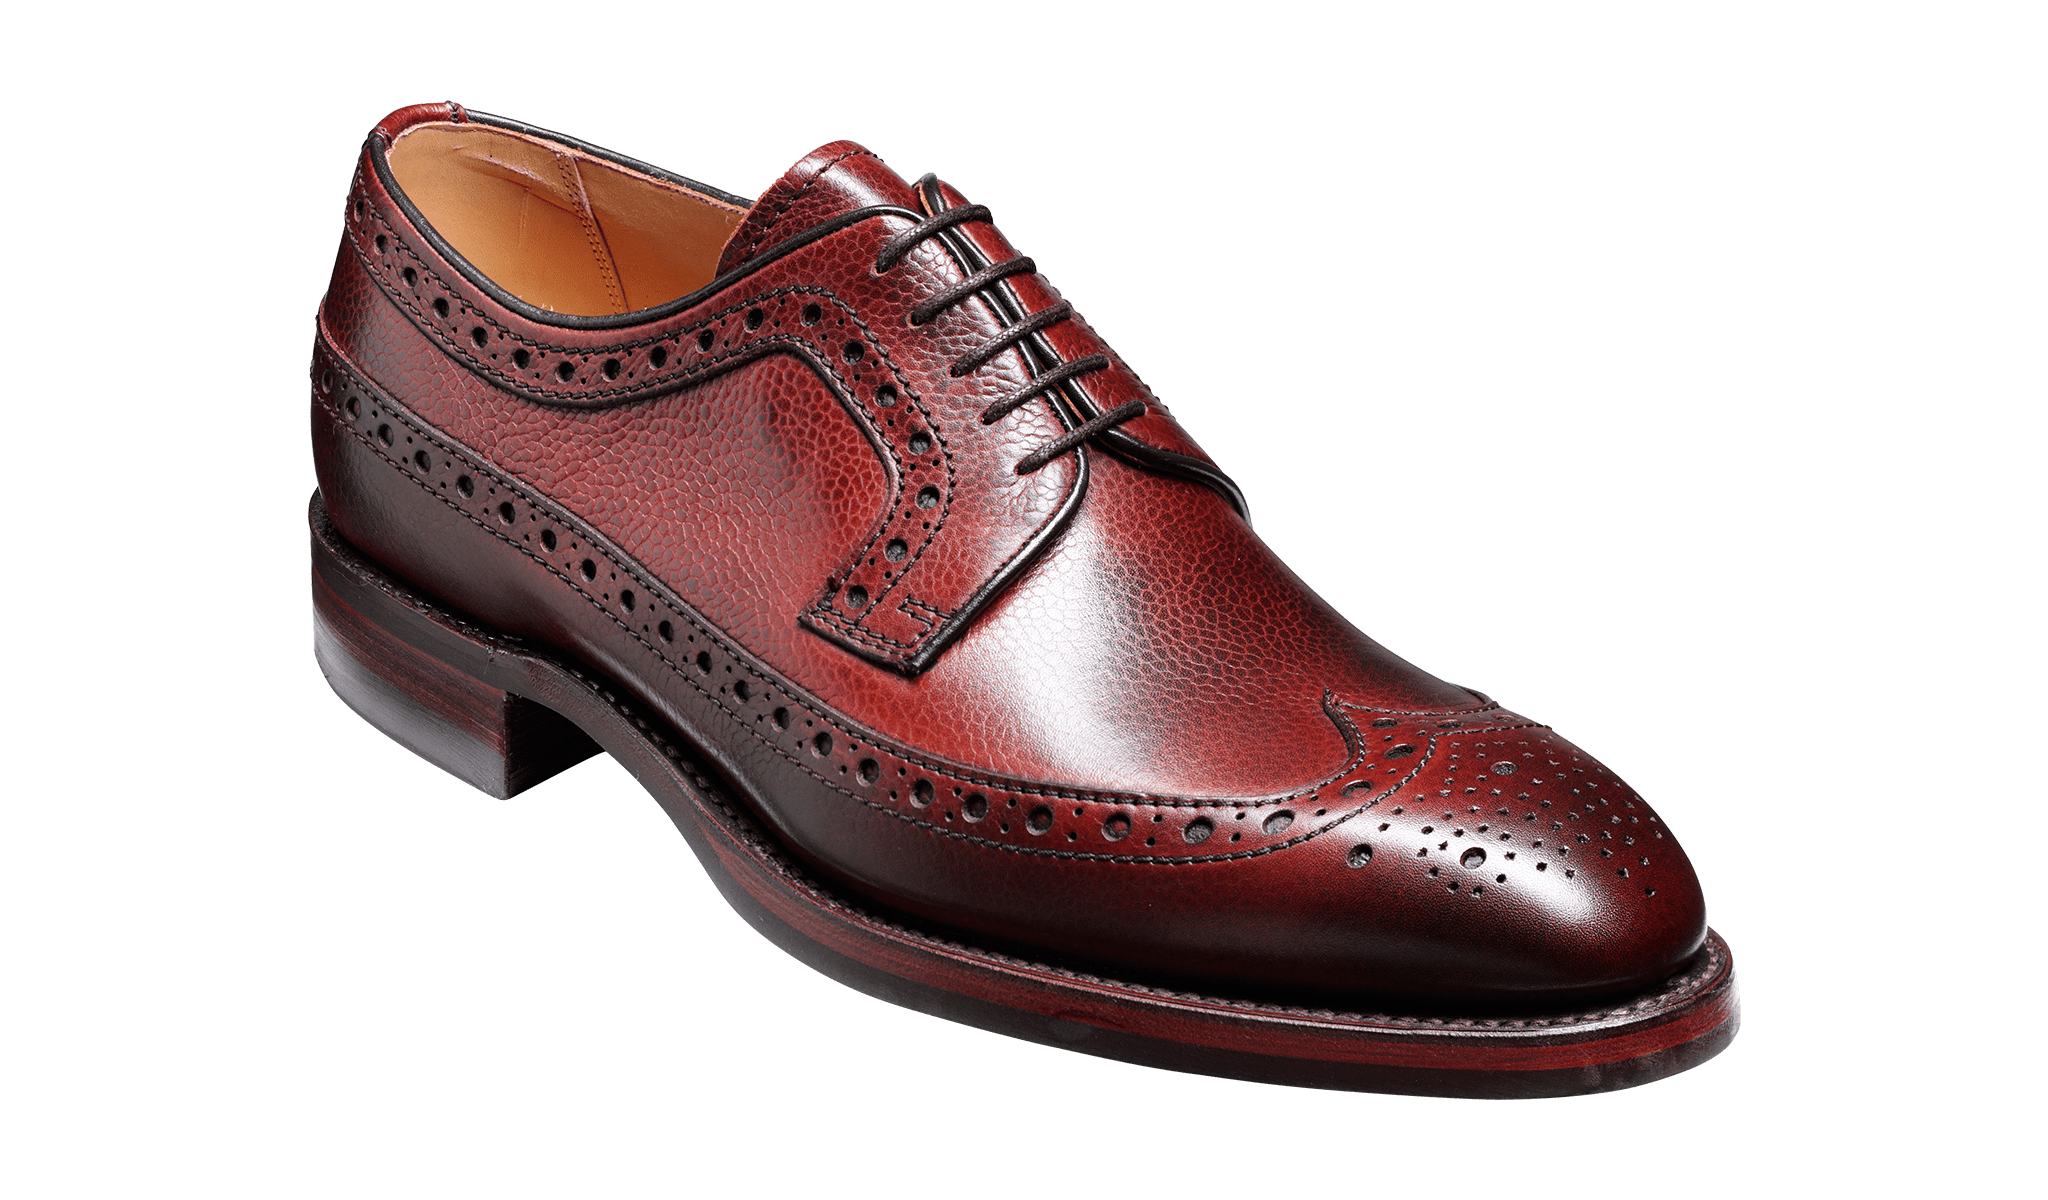 Barker Men's Calvay Leather Brogue Shoes 3989/76 - British Shoe Company